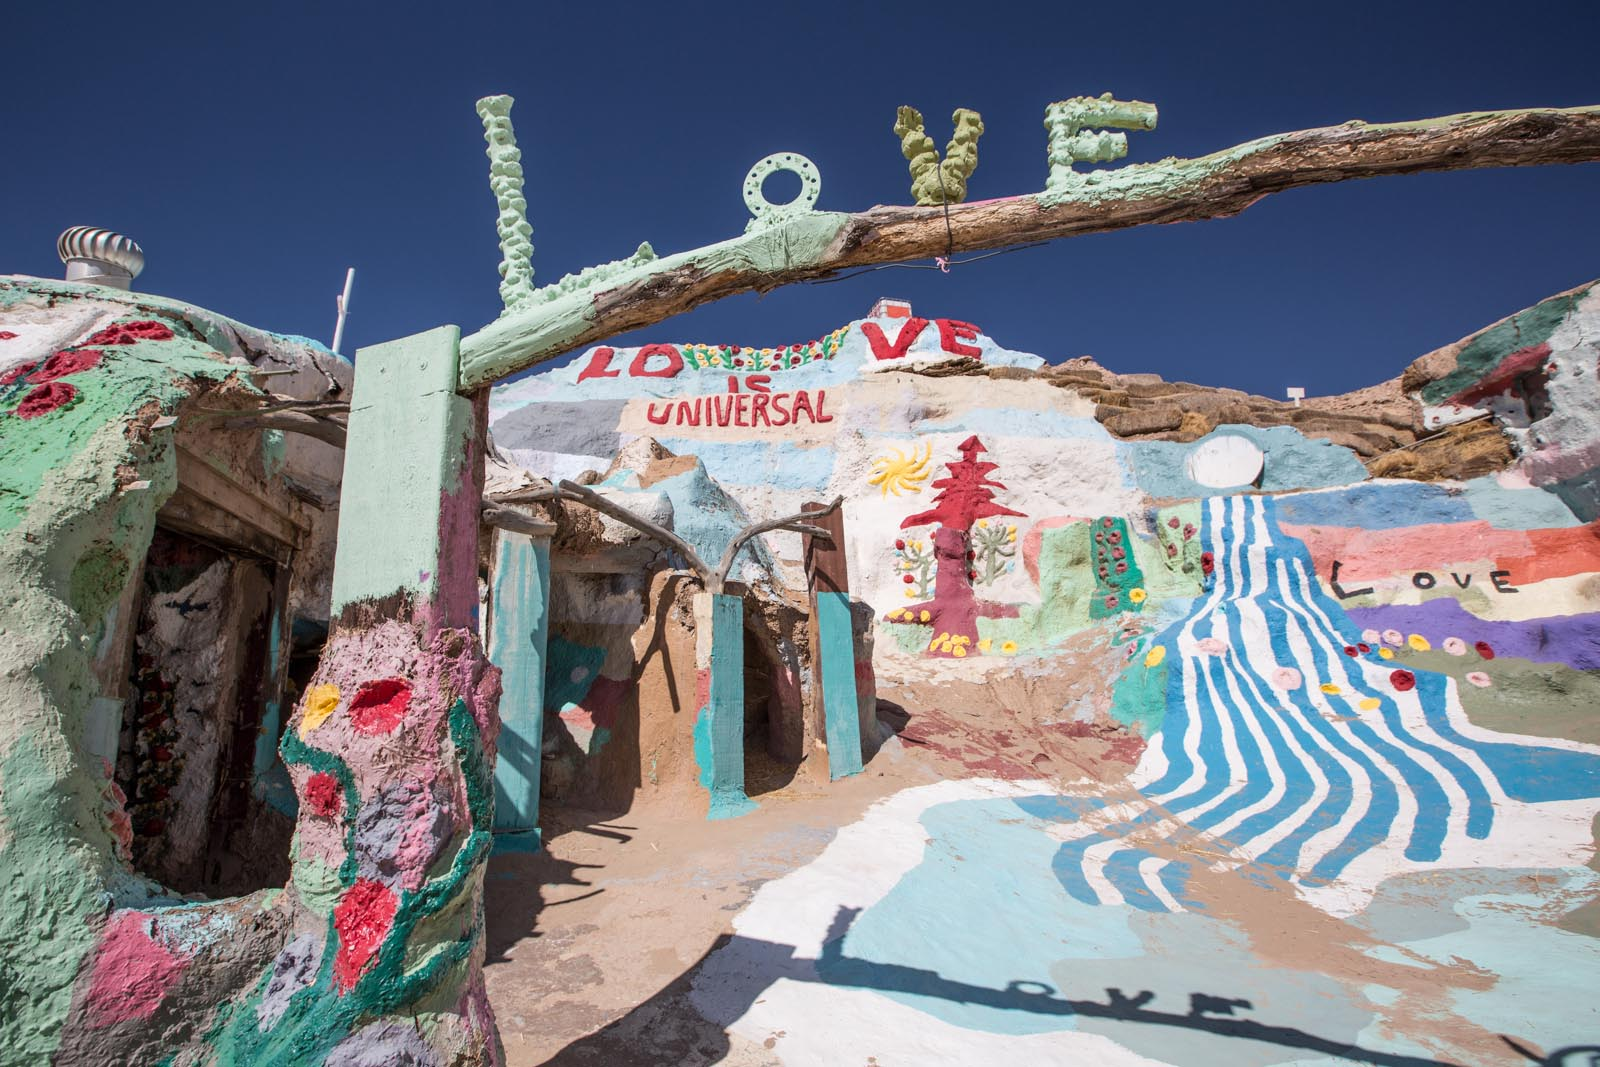 Salvation mountain, just outside of Slab City. Amazing and kind of weird. Love is universal I guess.